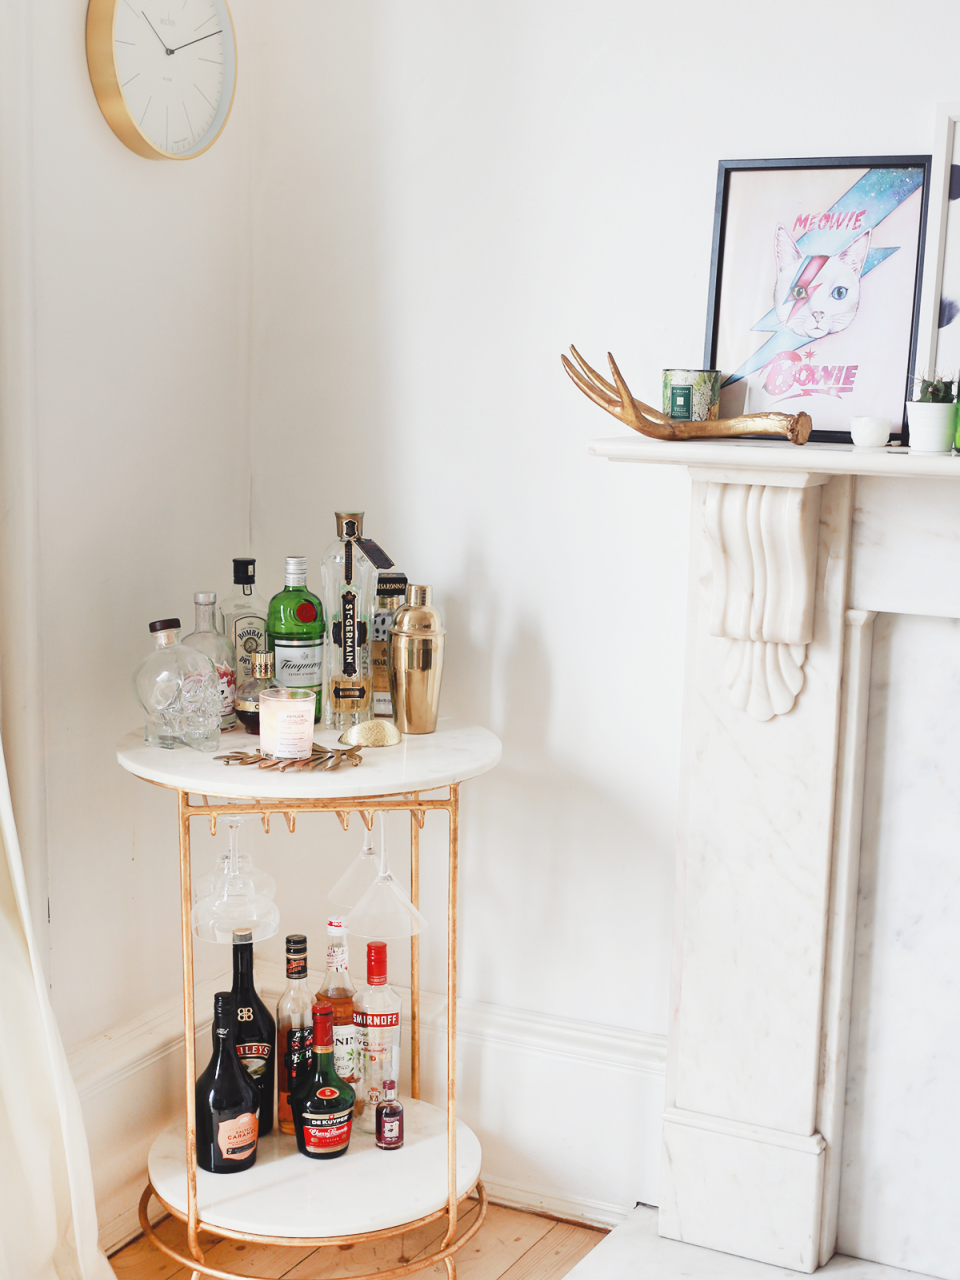 Bar Cart Inspiration for Small Spaces | Organized Mess